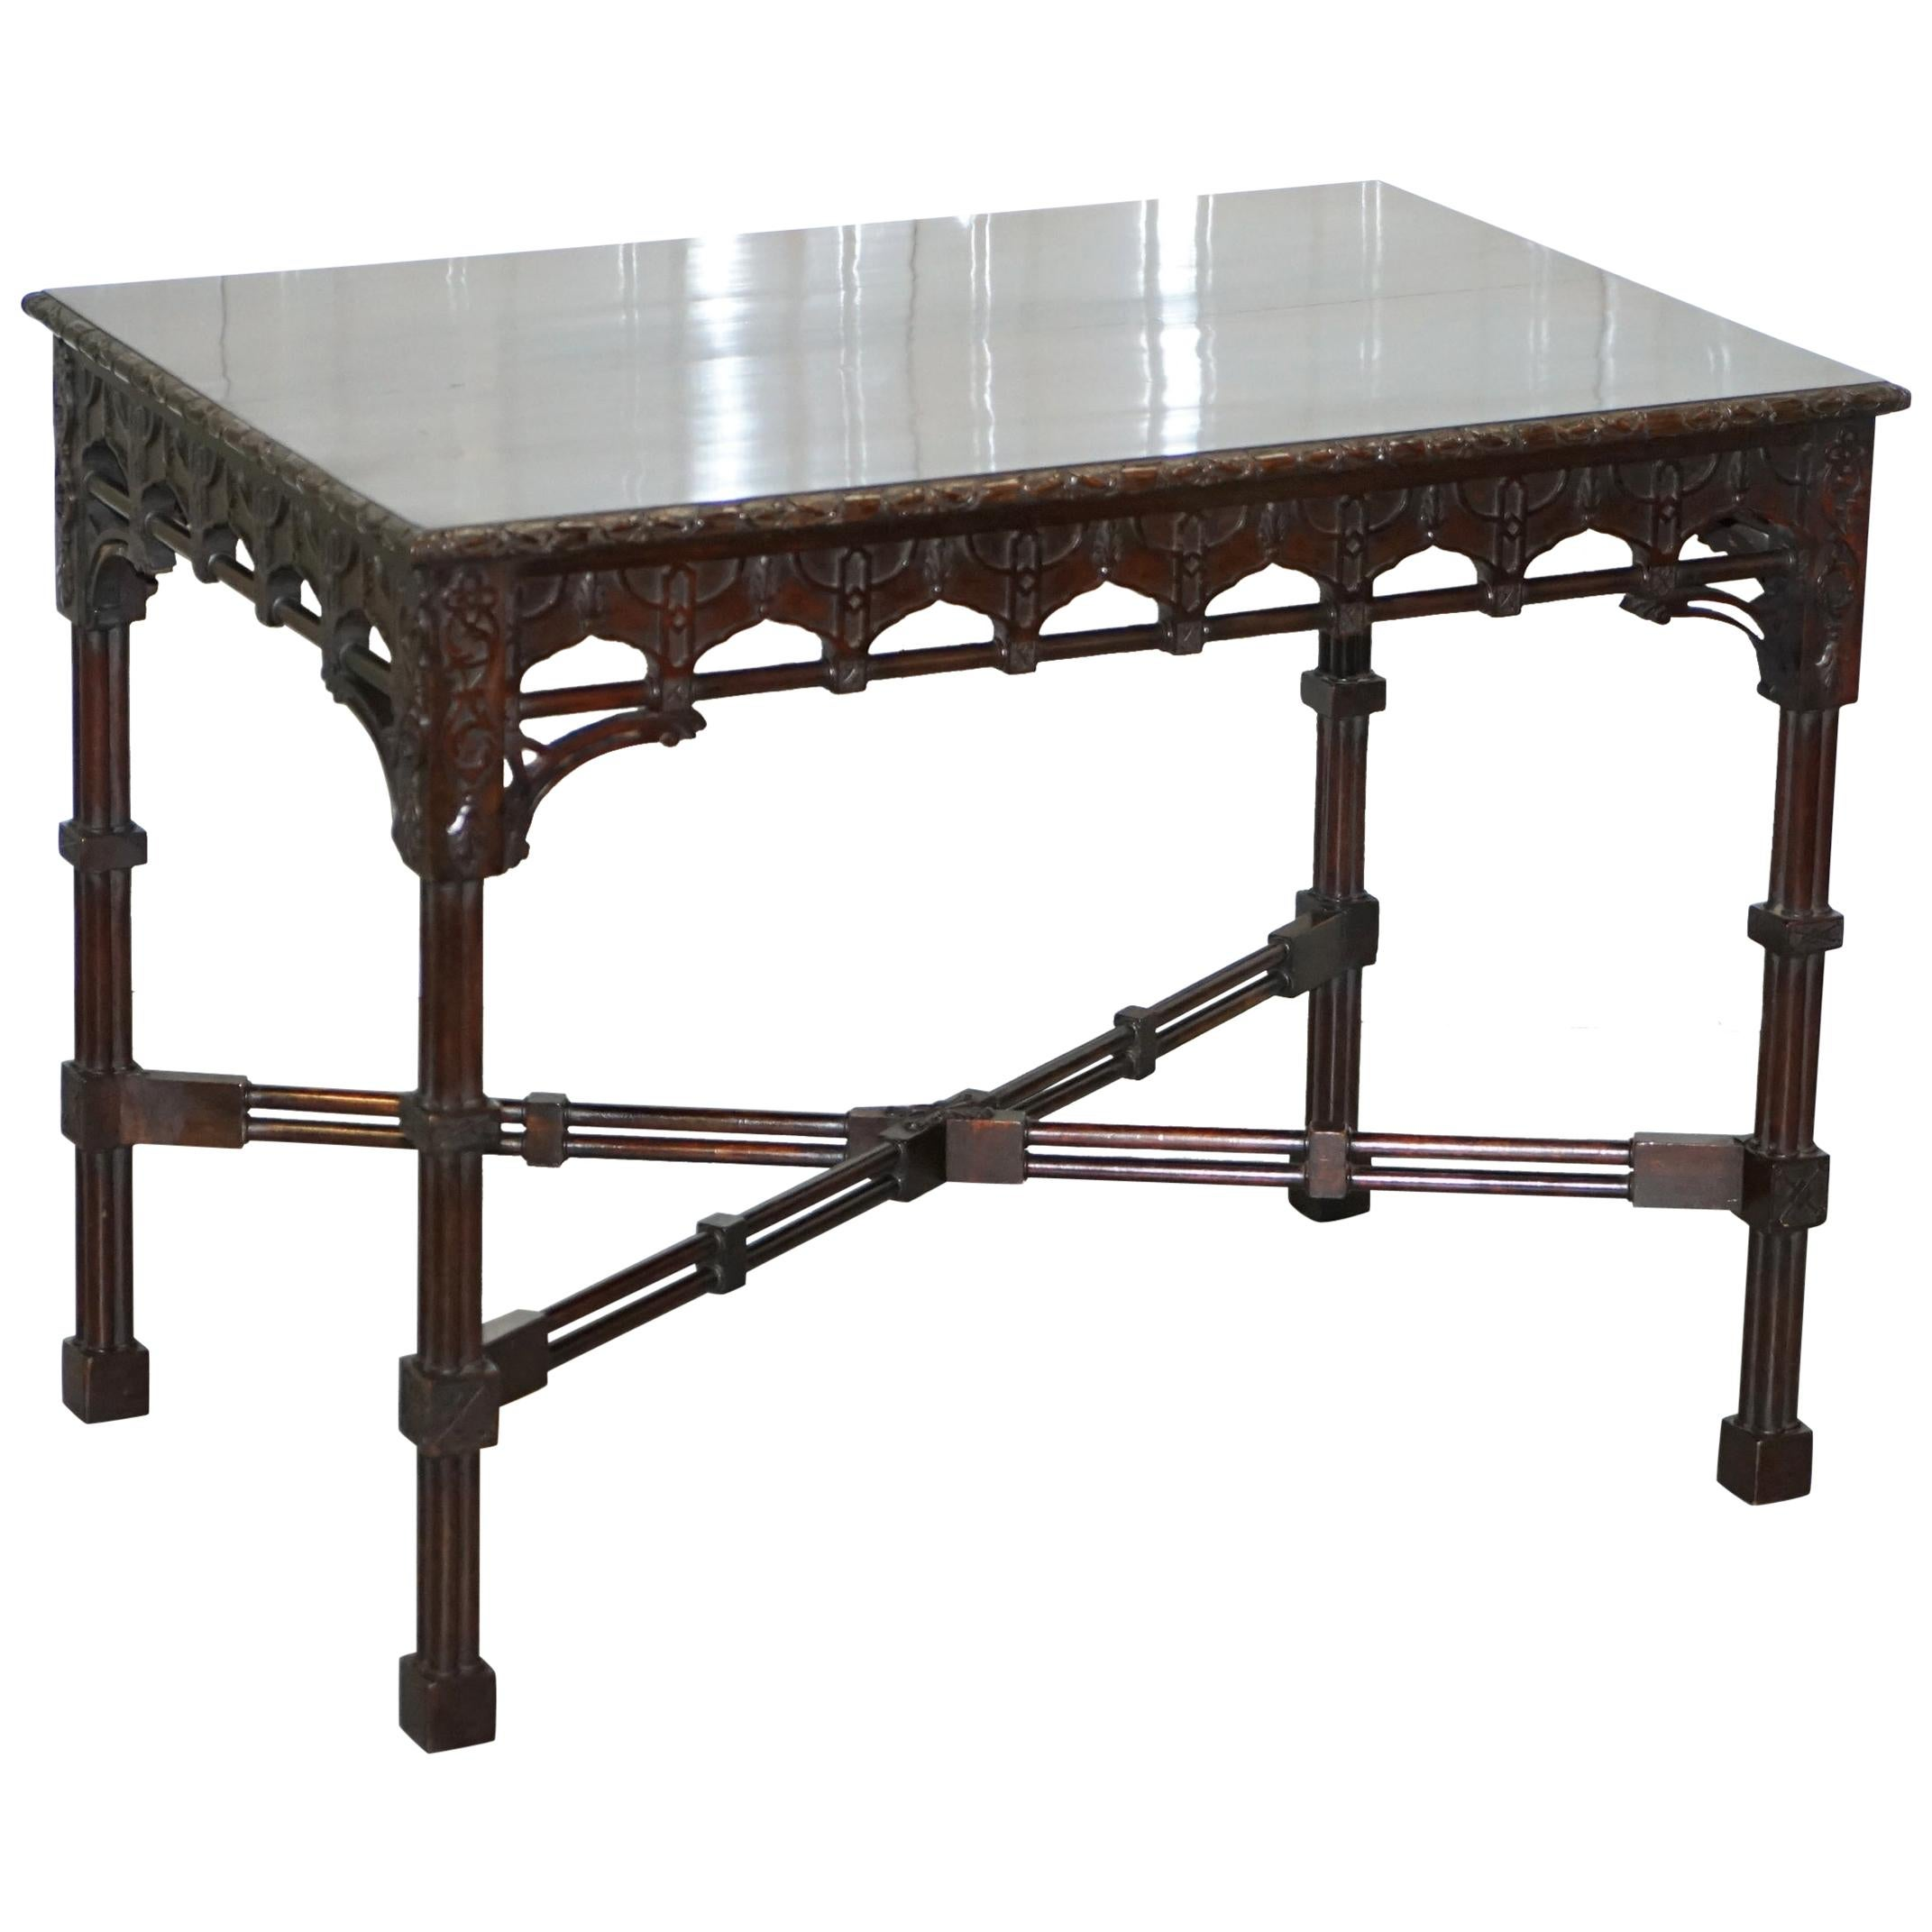 Antique And Vintage Card Tables And Tea Tables   987 For Sale At 1stdibs